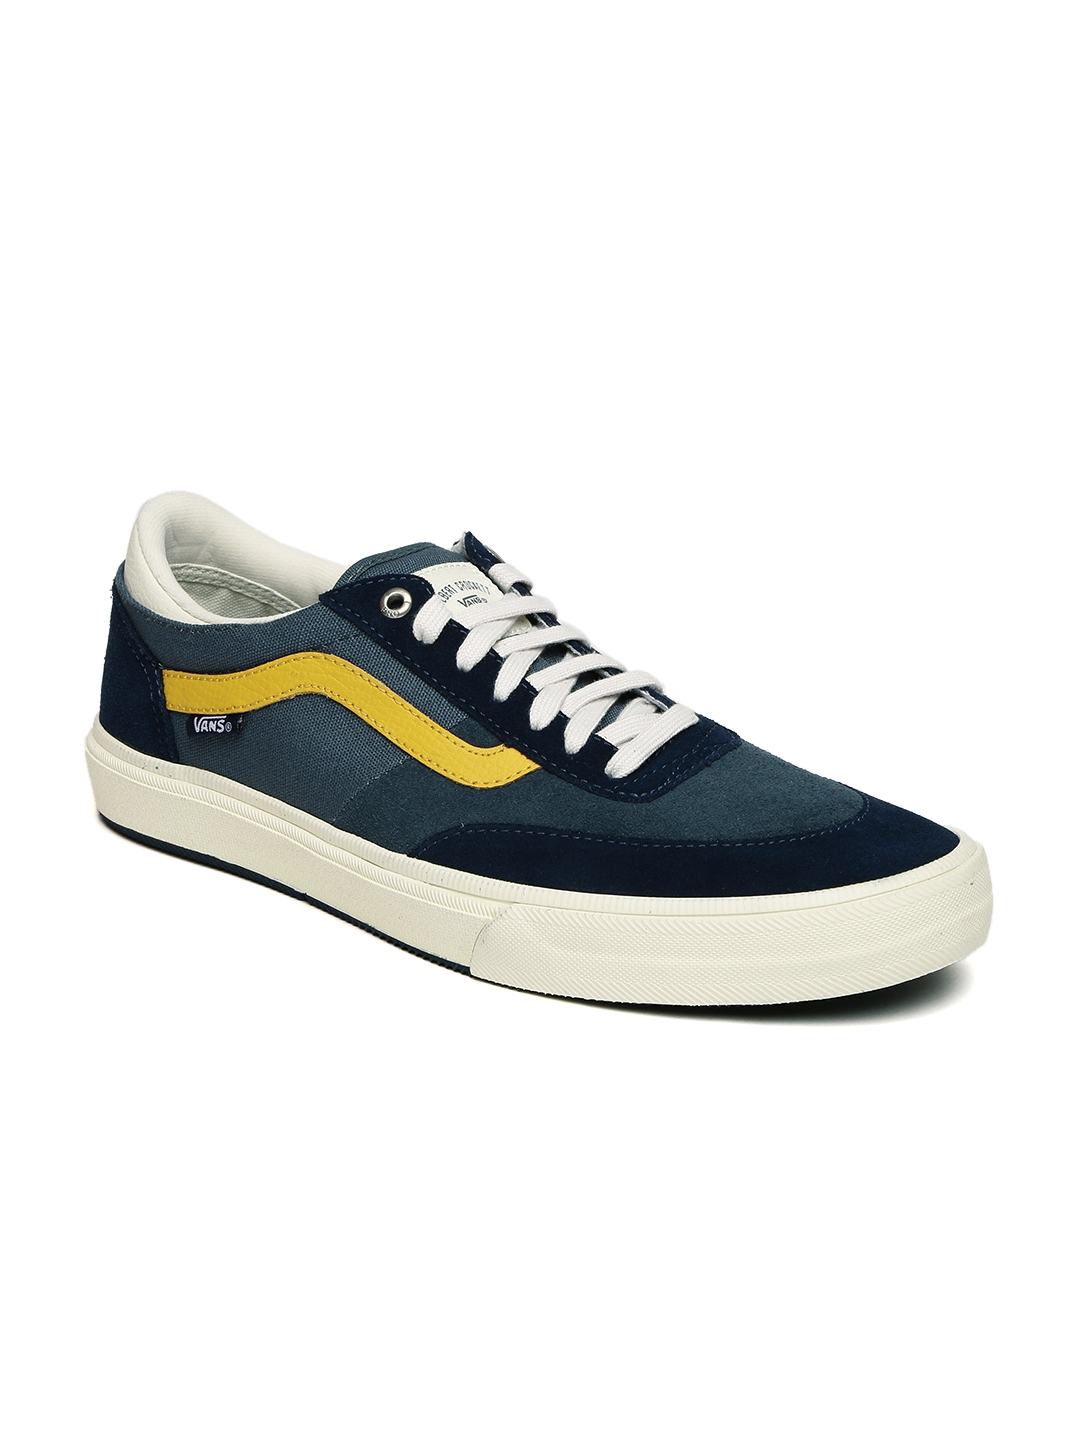 6fb9de3fca Buy Vans Men Navy Blue Gilbert Crockett 2 Pro Skate Shoes - Casual Shoes  for Men 1869931